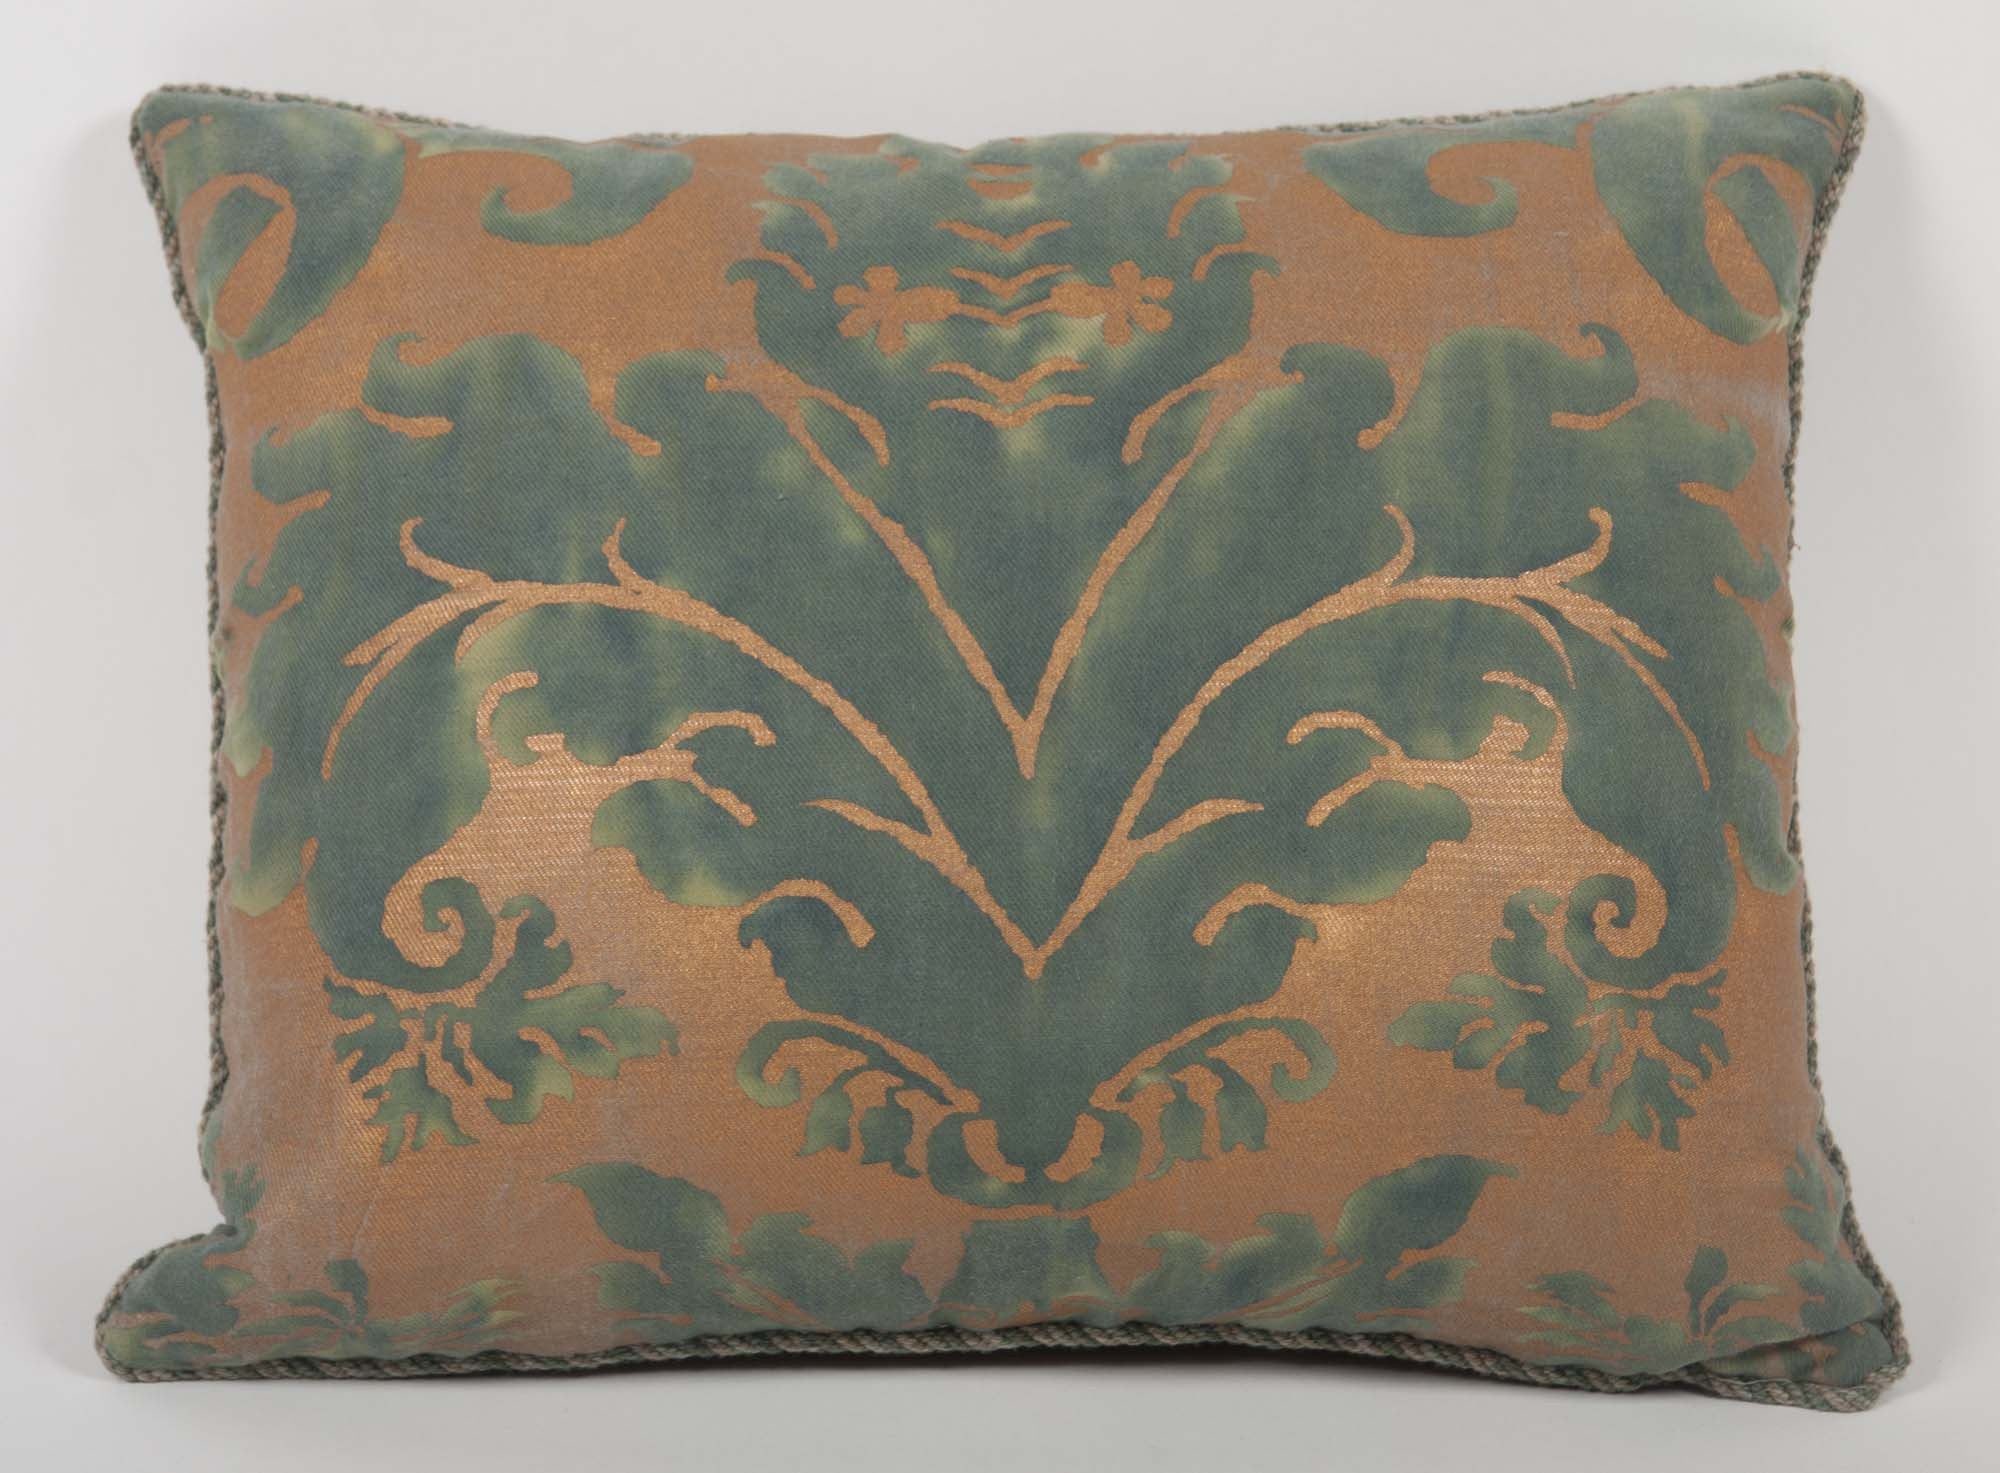 Pillow of Fortuny Fabric with Leather Backing